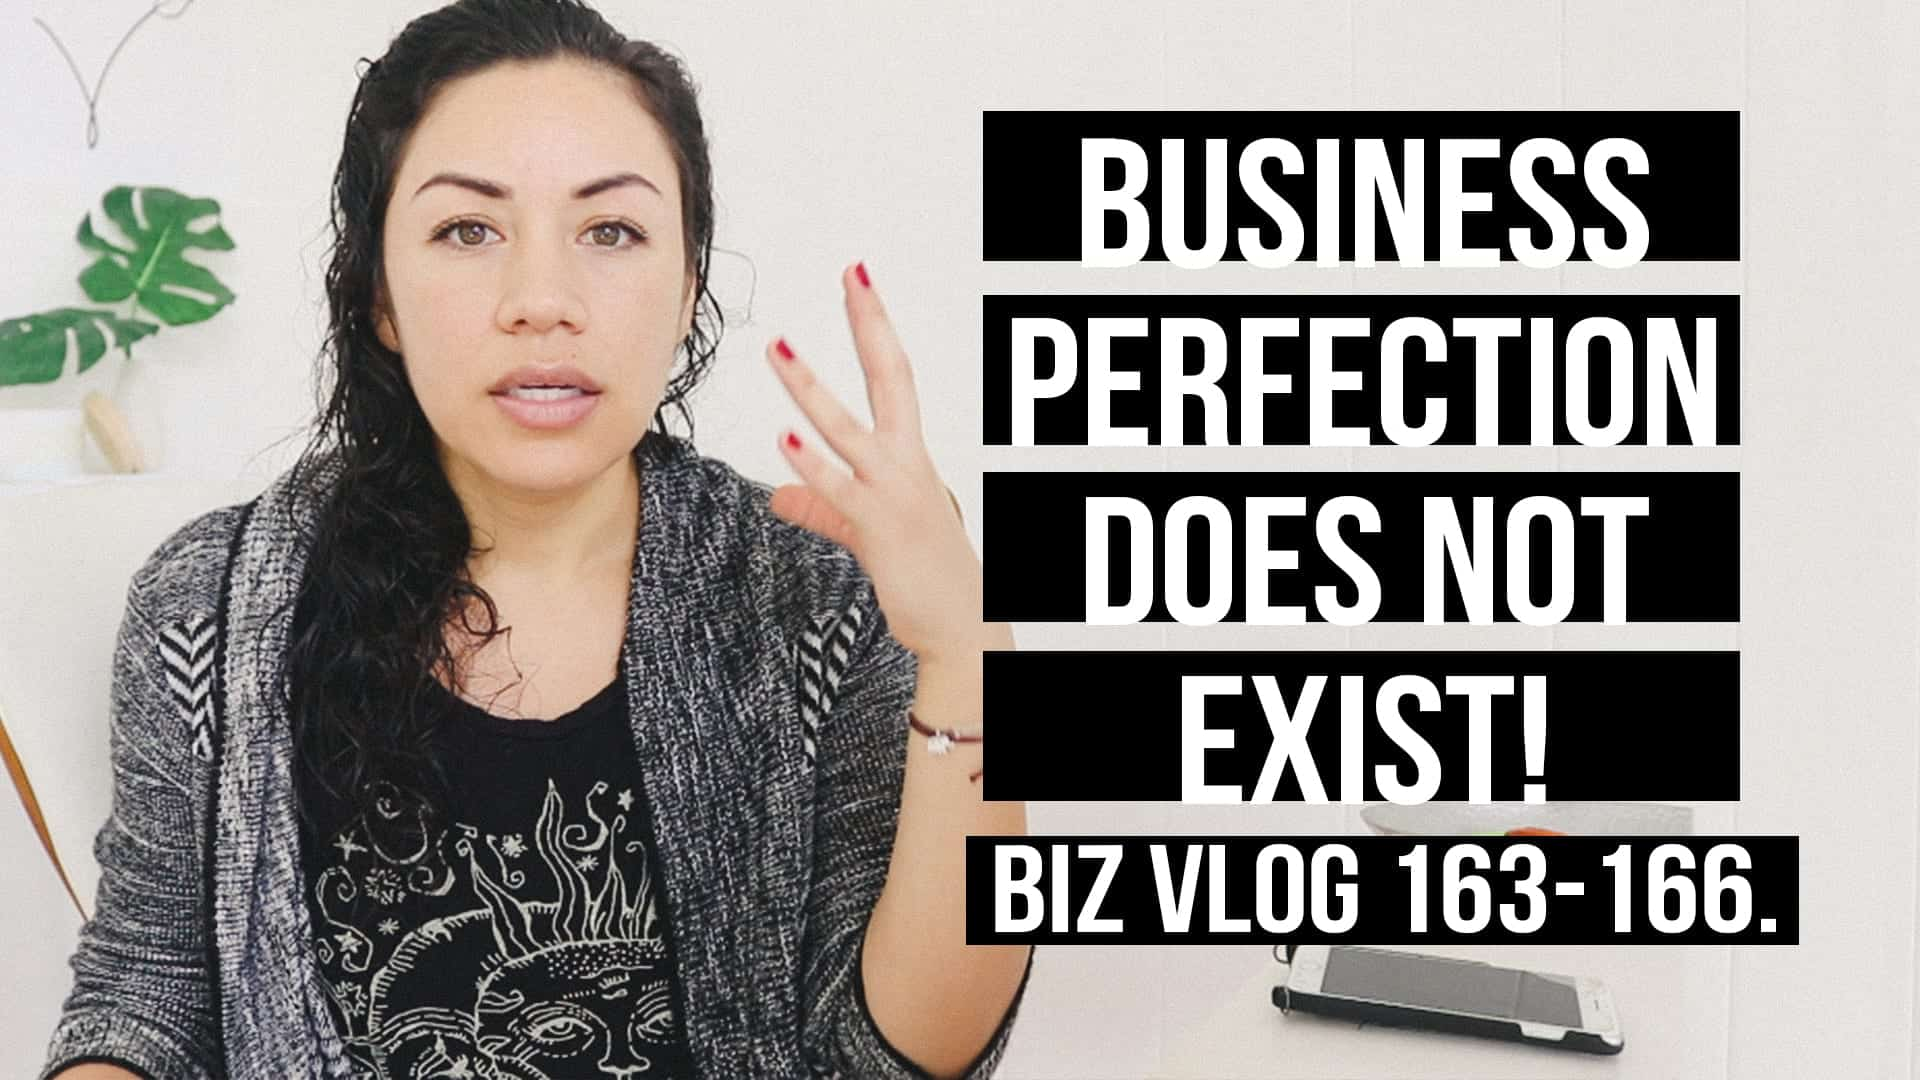 BUSINESS PERFECTION DOES NOT EXIST! BIZ VLOG 163-166.